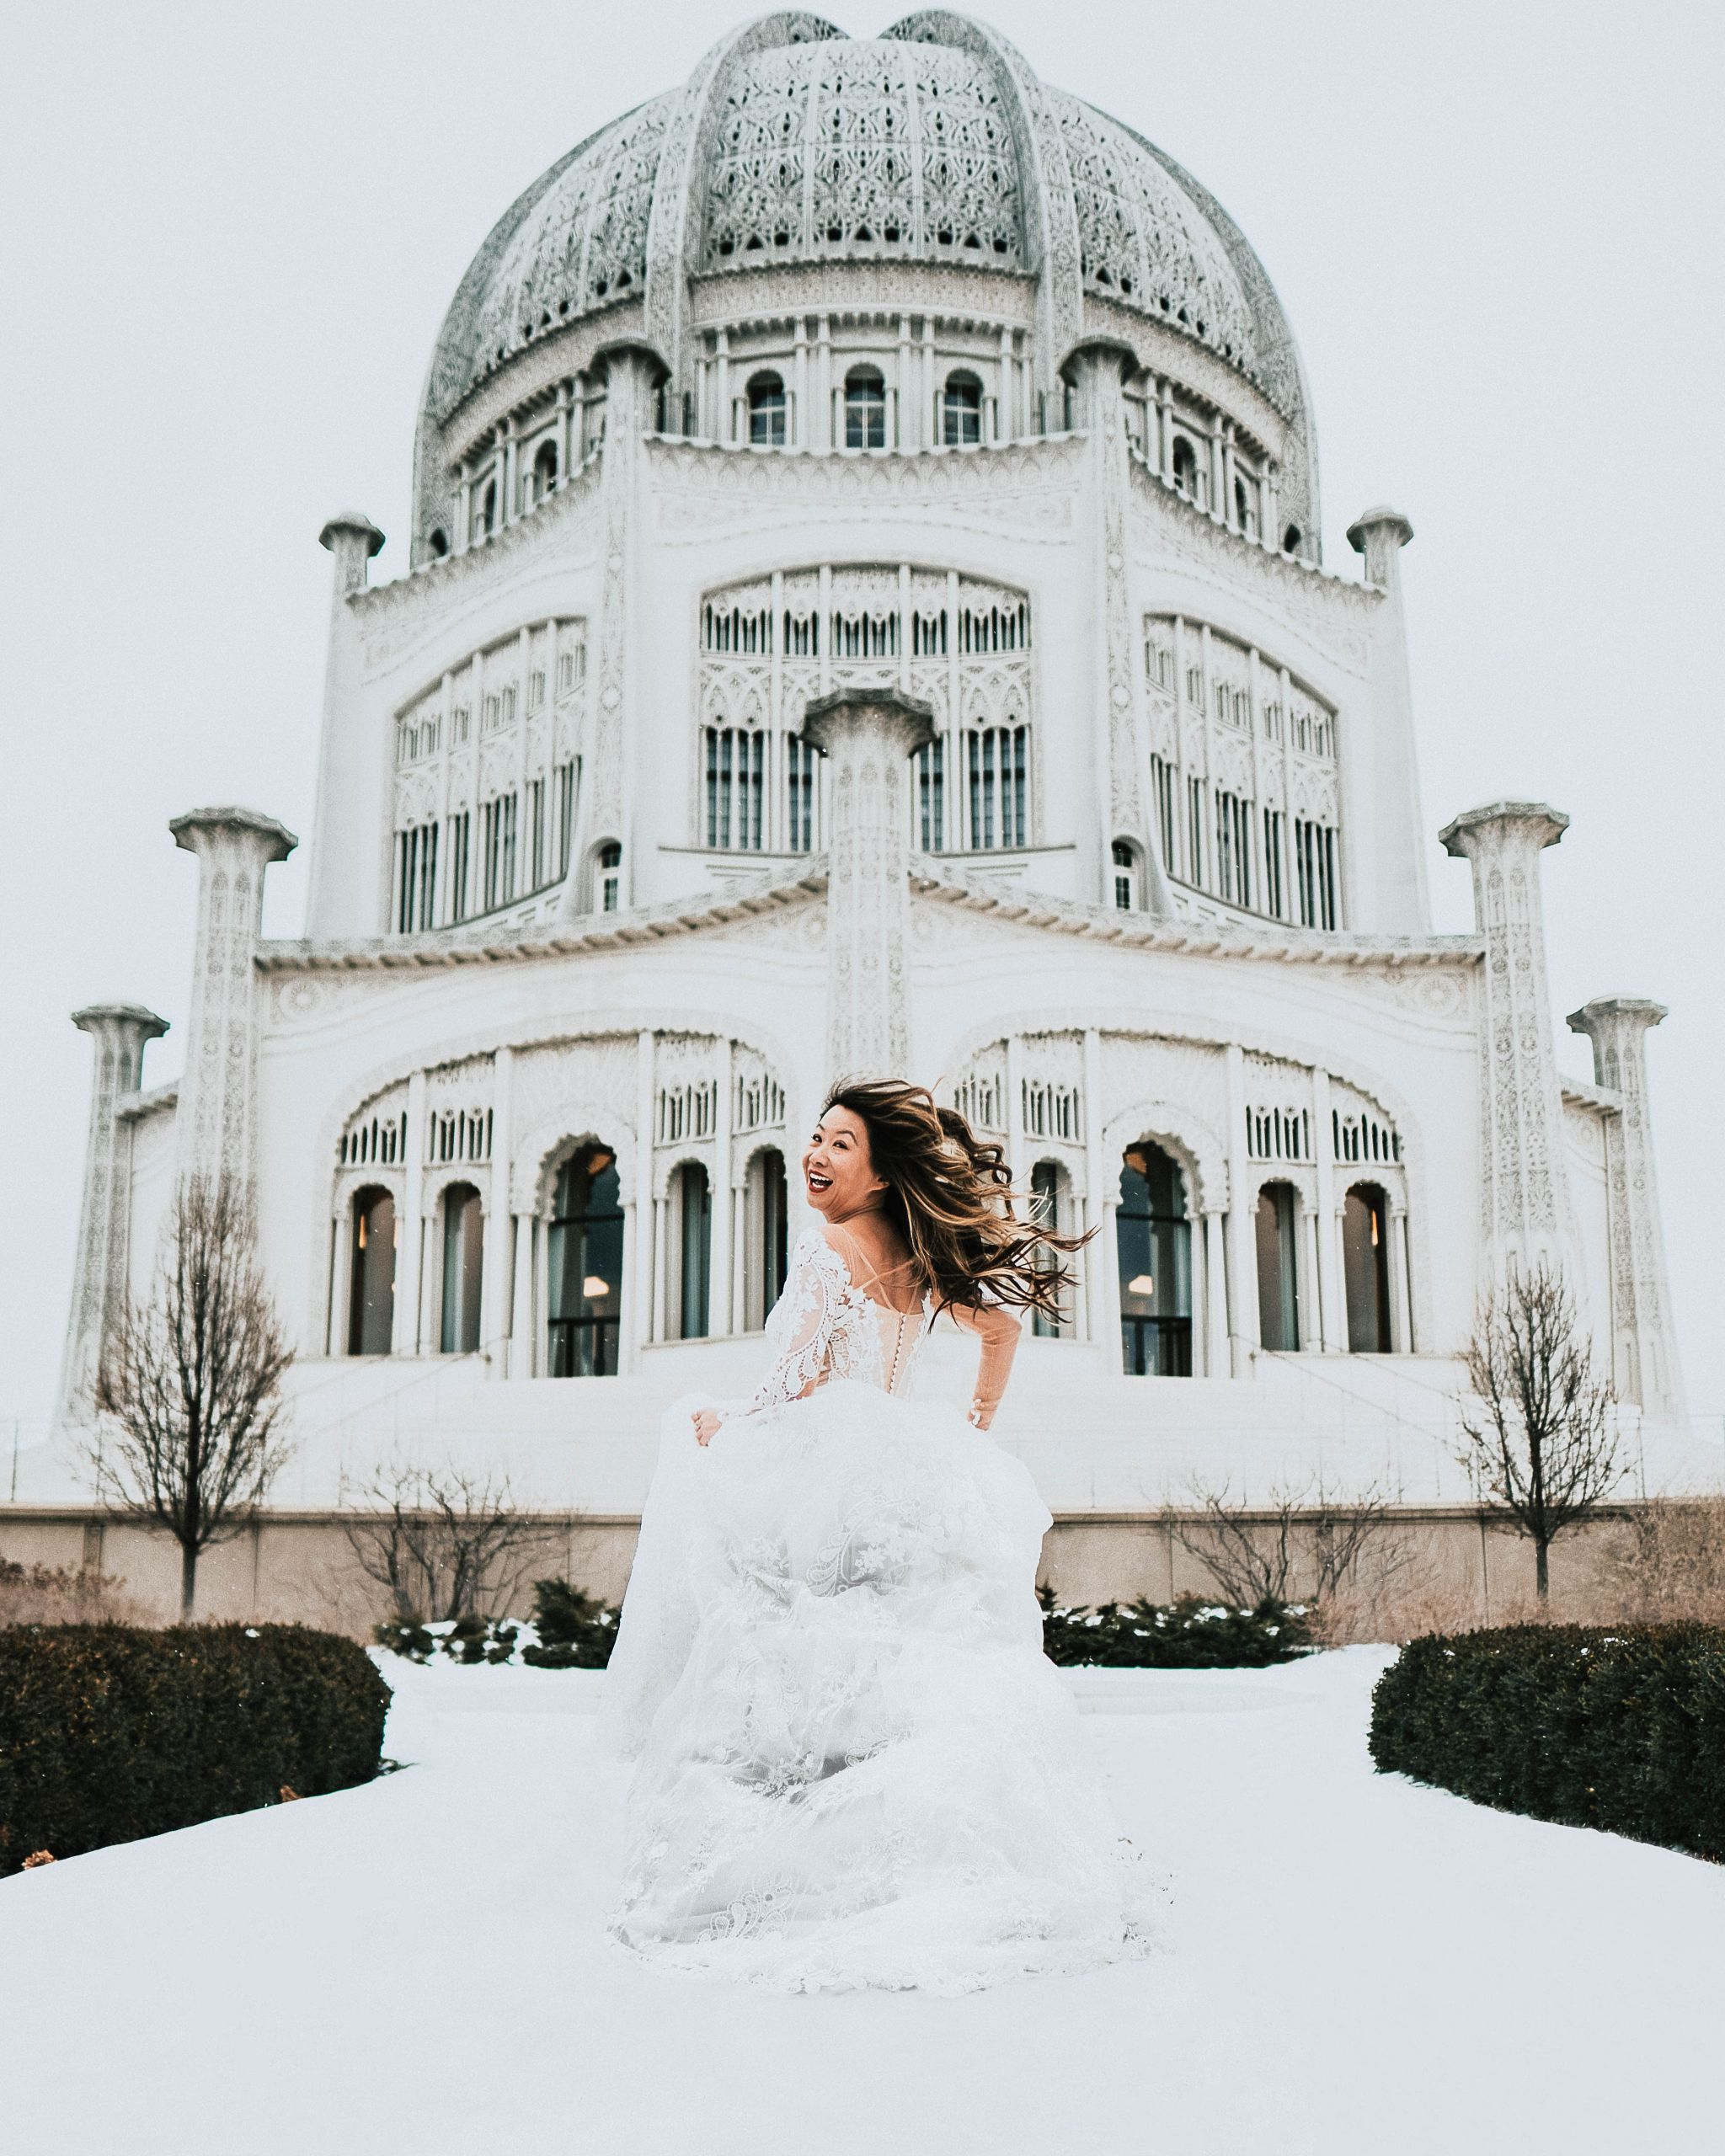 Best places to take photographs at in chicago, 20 things to do before you get married, things you must do before you get married, Viero Bridal Gown, Jennifer Worman